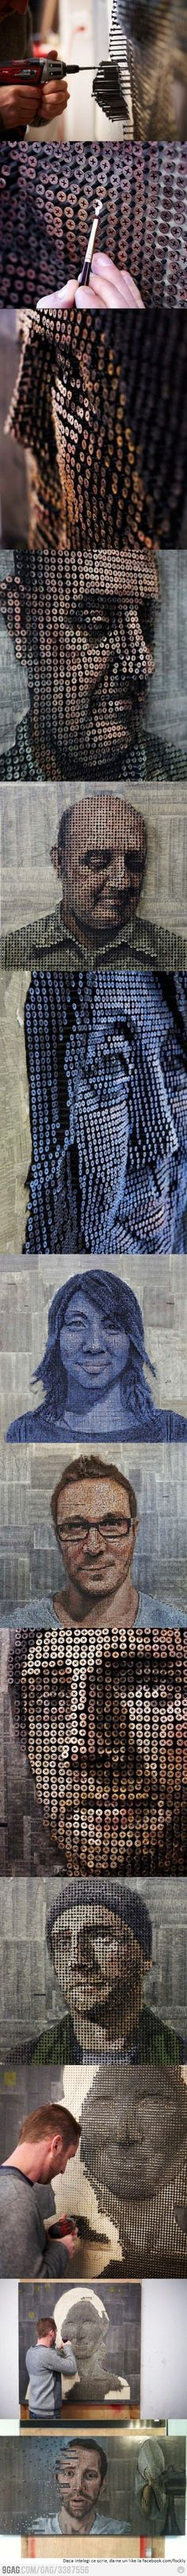 Amazing 3D portraits made out of screws by Andrew Myers - Extreme Materials